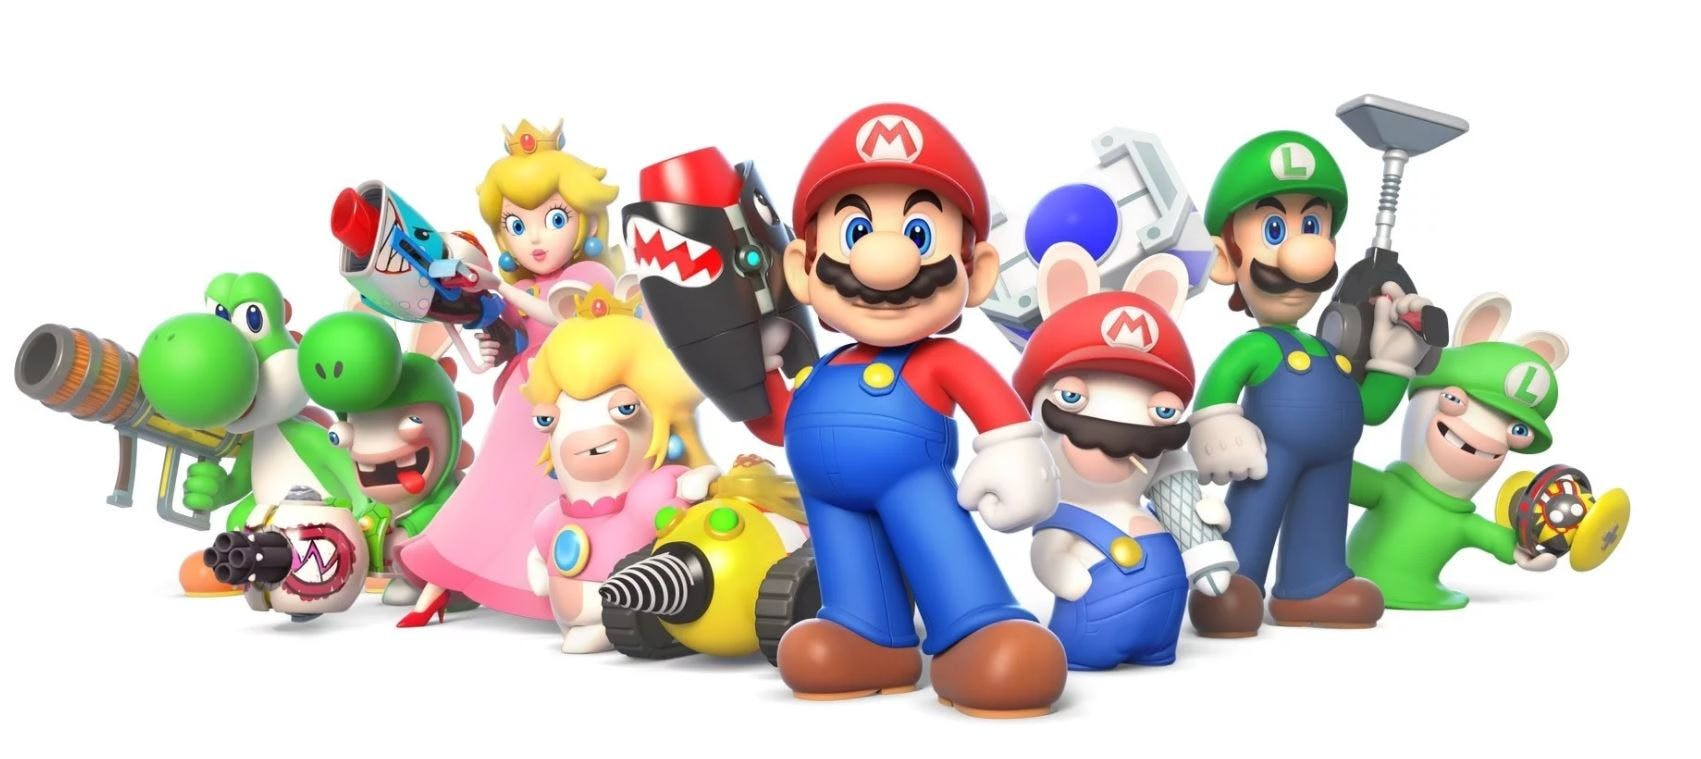 Mario and Rabbids are making mischief!